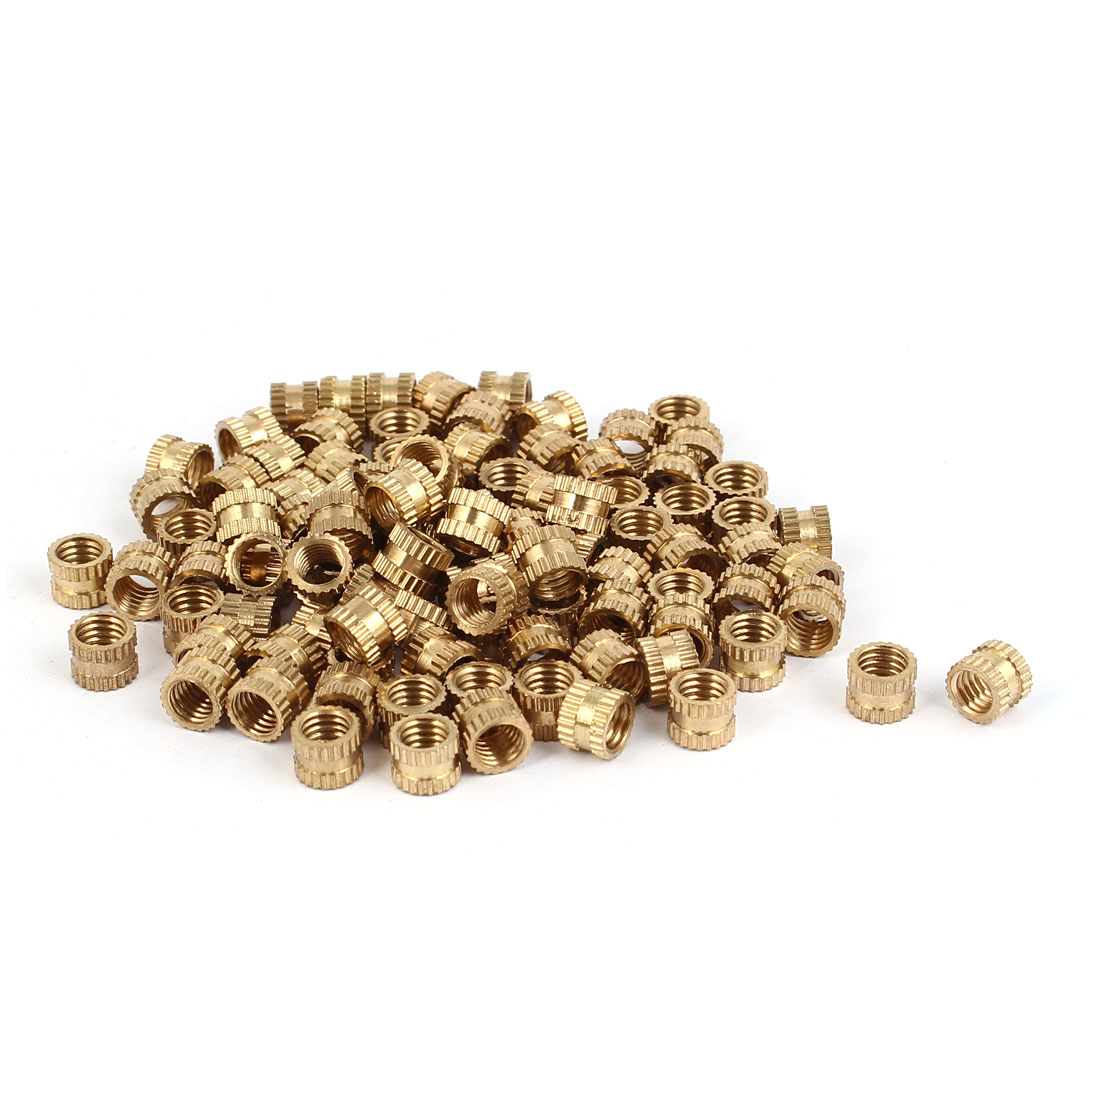 M5 x 5mm Brass Cylinder Injection Molding Knurled Threaded Embedment Nuts 100PCS